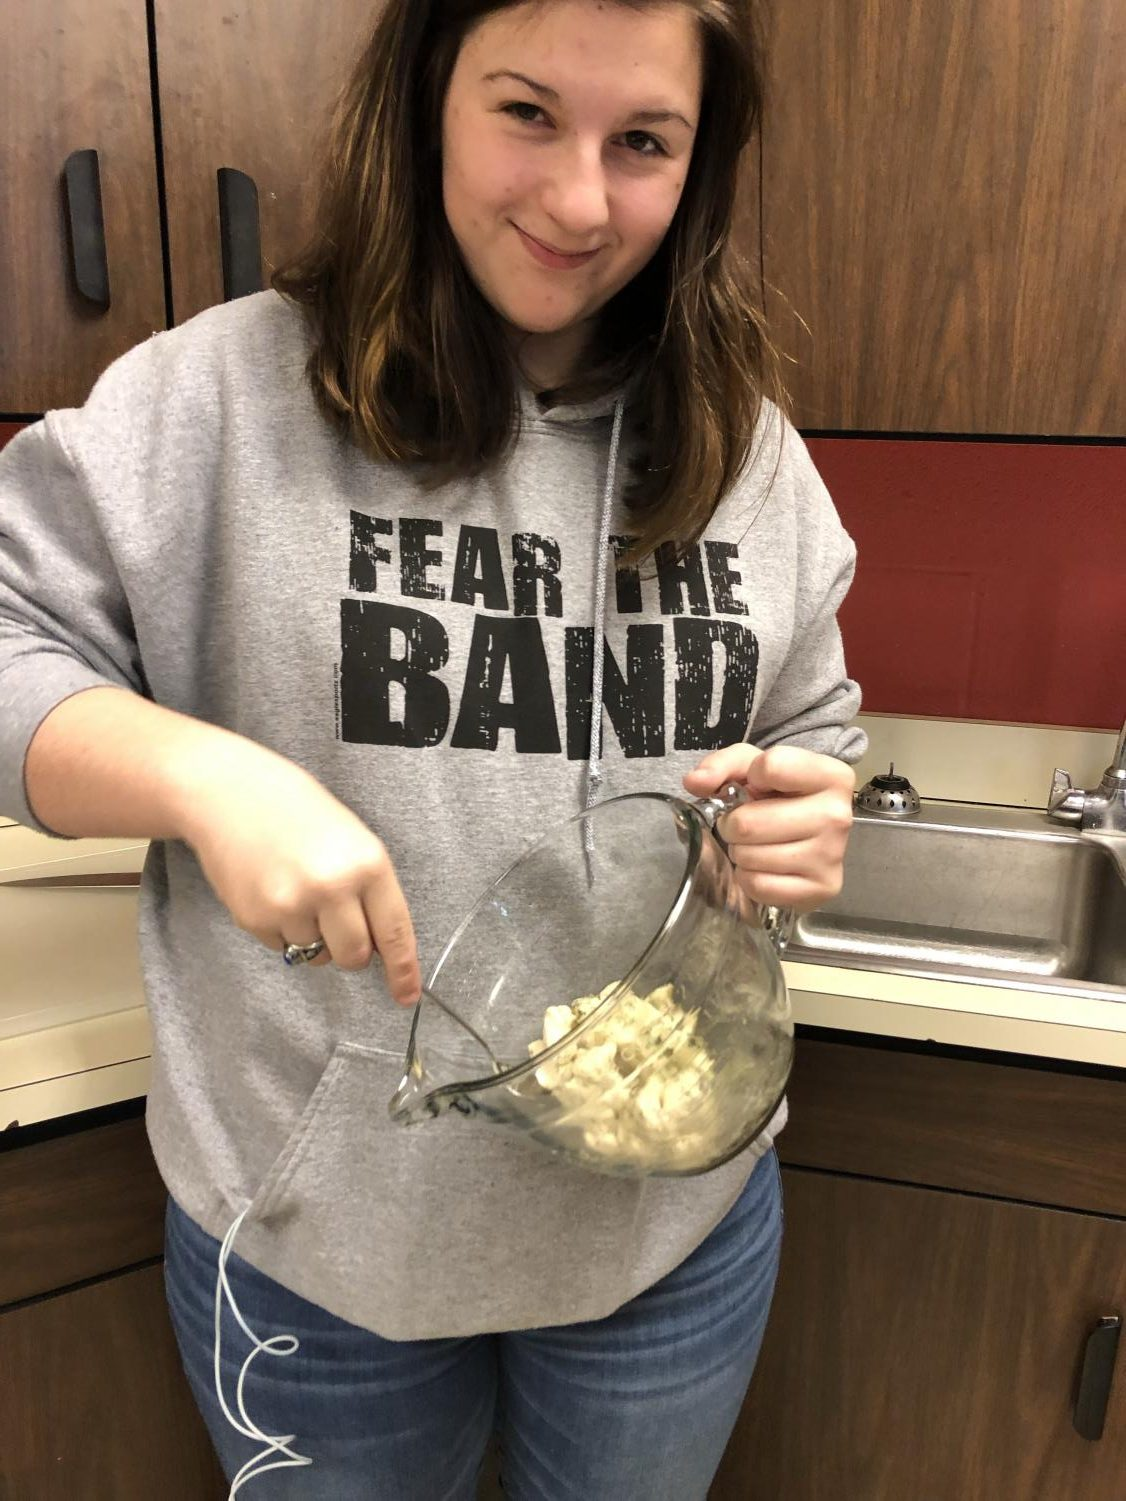 In this photo, junior Victoria Merrit is also following the recipe and is mixing the dough with the butter and dill mixture.